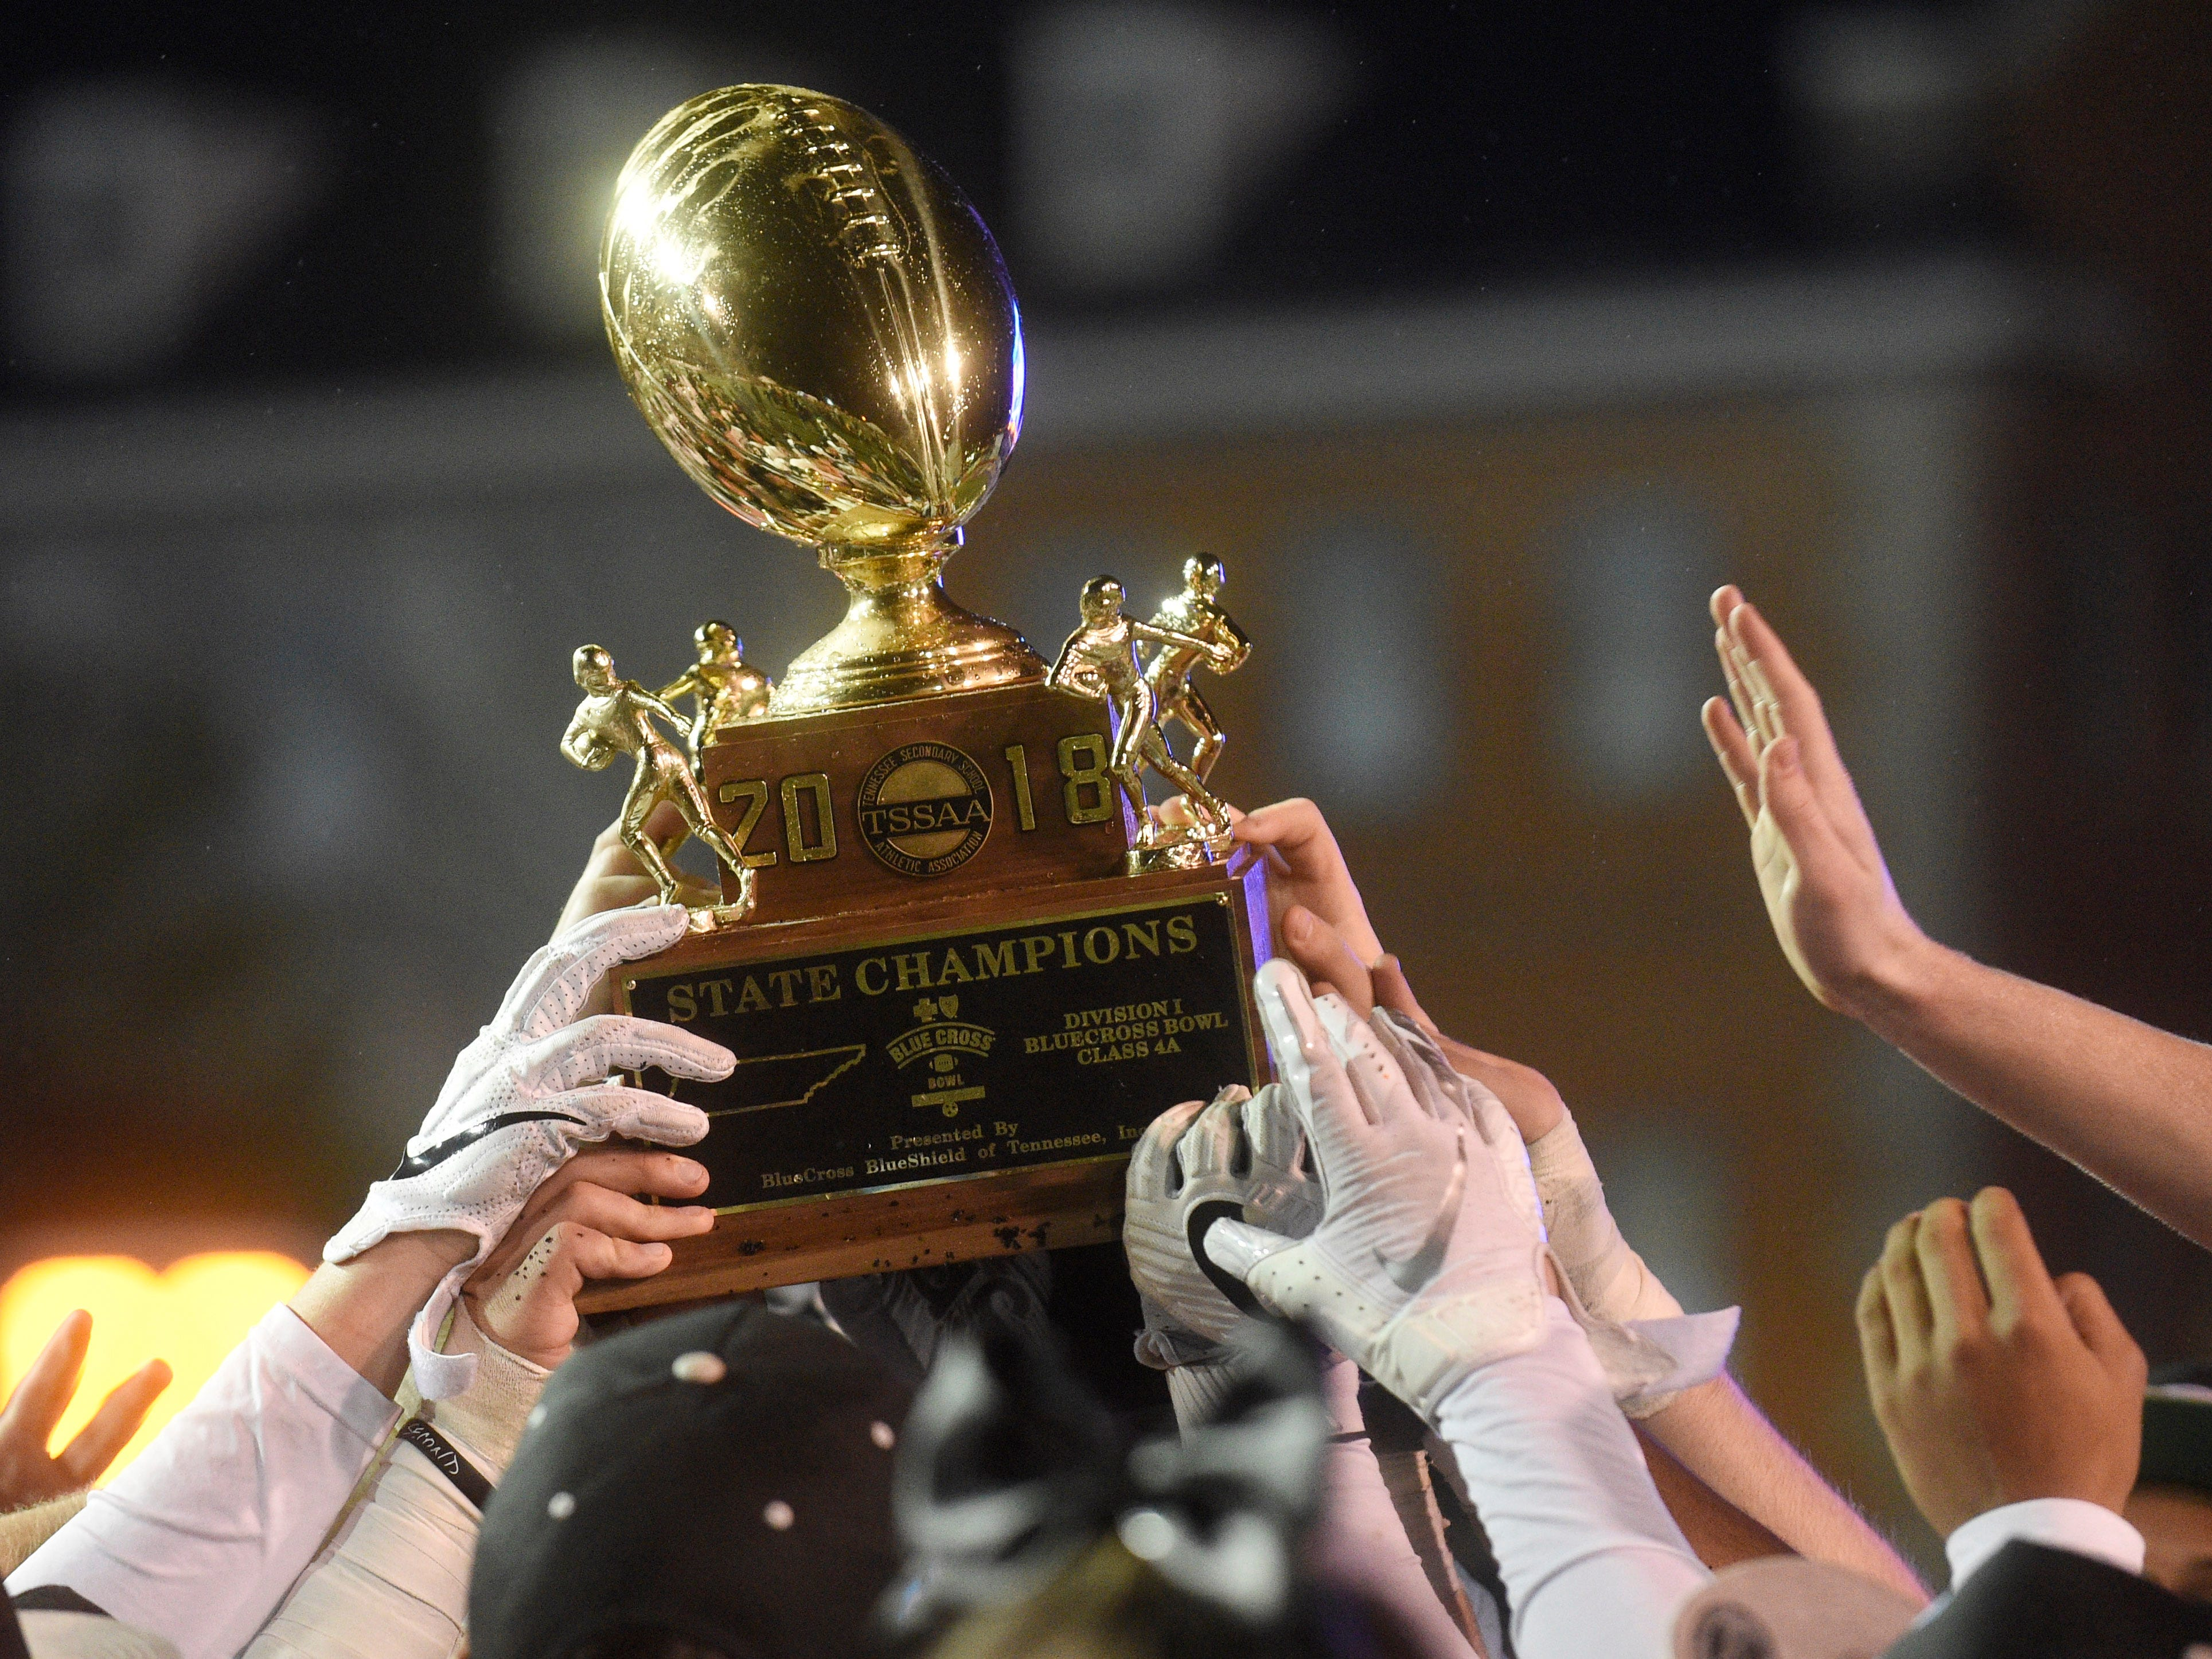 Greeneville players hold their trophy in the Class 4A BlueCross Bowl state championship at Tennessee Tech's Tucker Stadium in Cookeville, Tenn., on Thursday, Nov. 29, 2018.